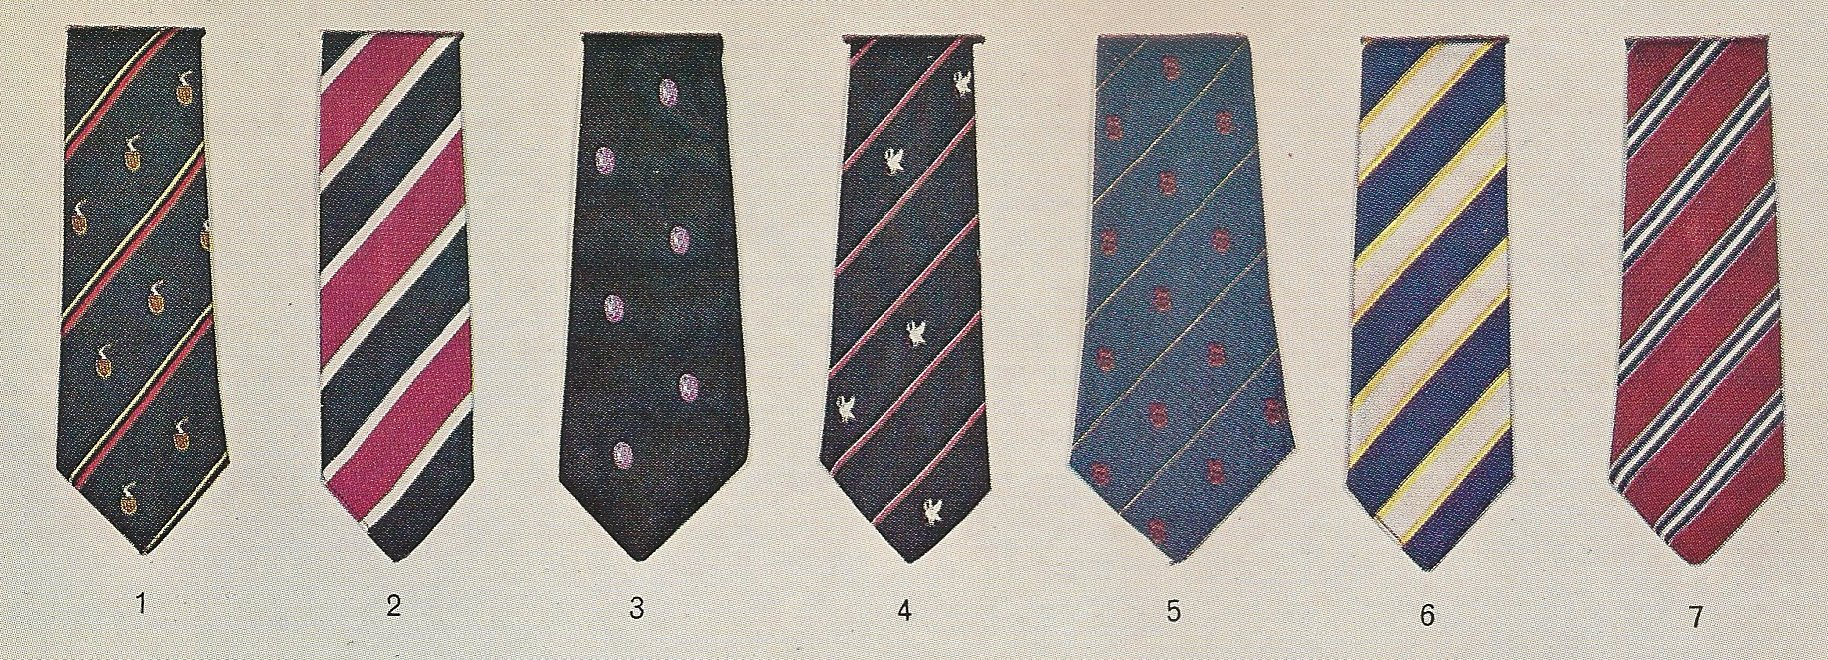 Old school ties simanaitis says a quarter page of ties from left to right 1 king henry viii school coventry 2 3 king williams college isle of man 4 kings college tauton ccuart Gallery